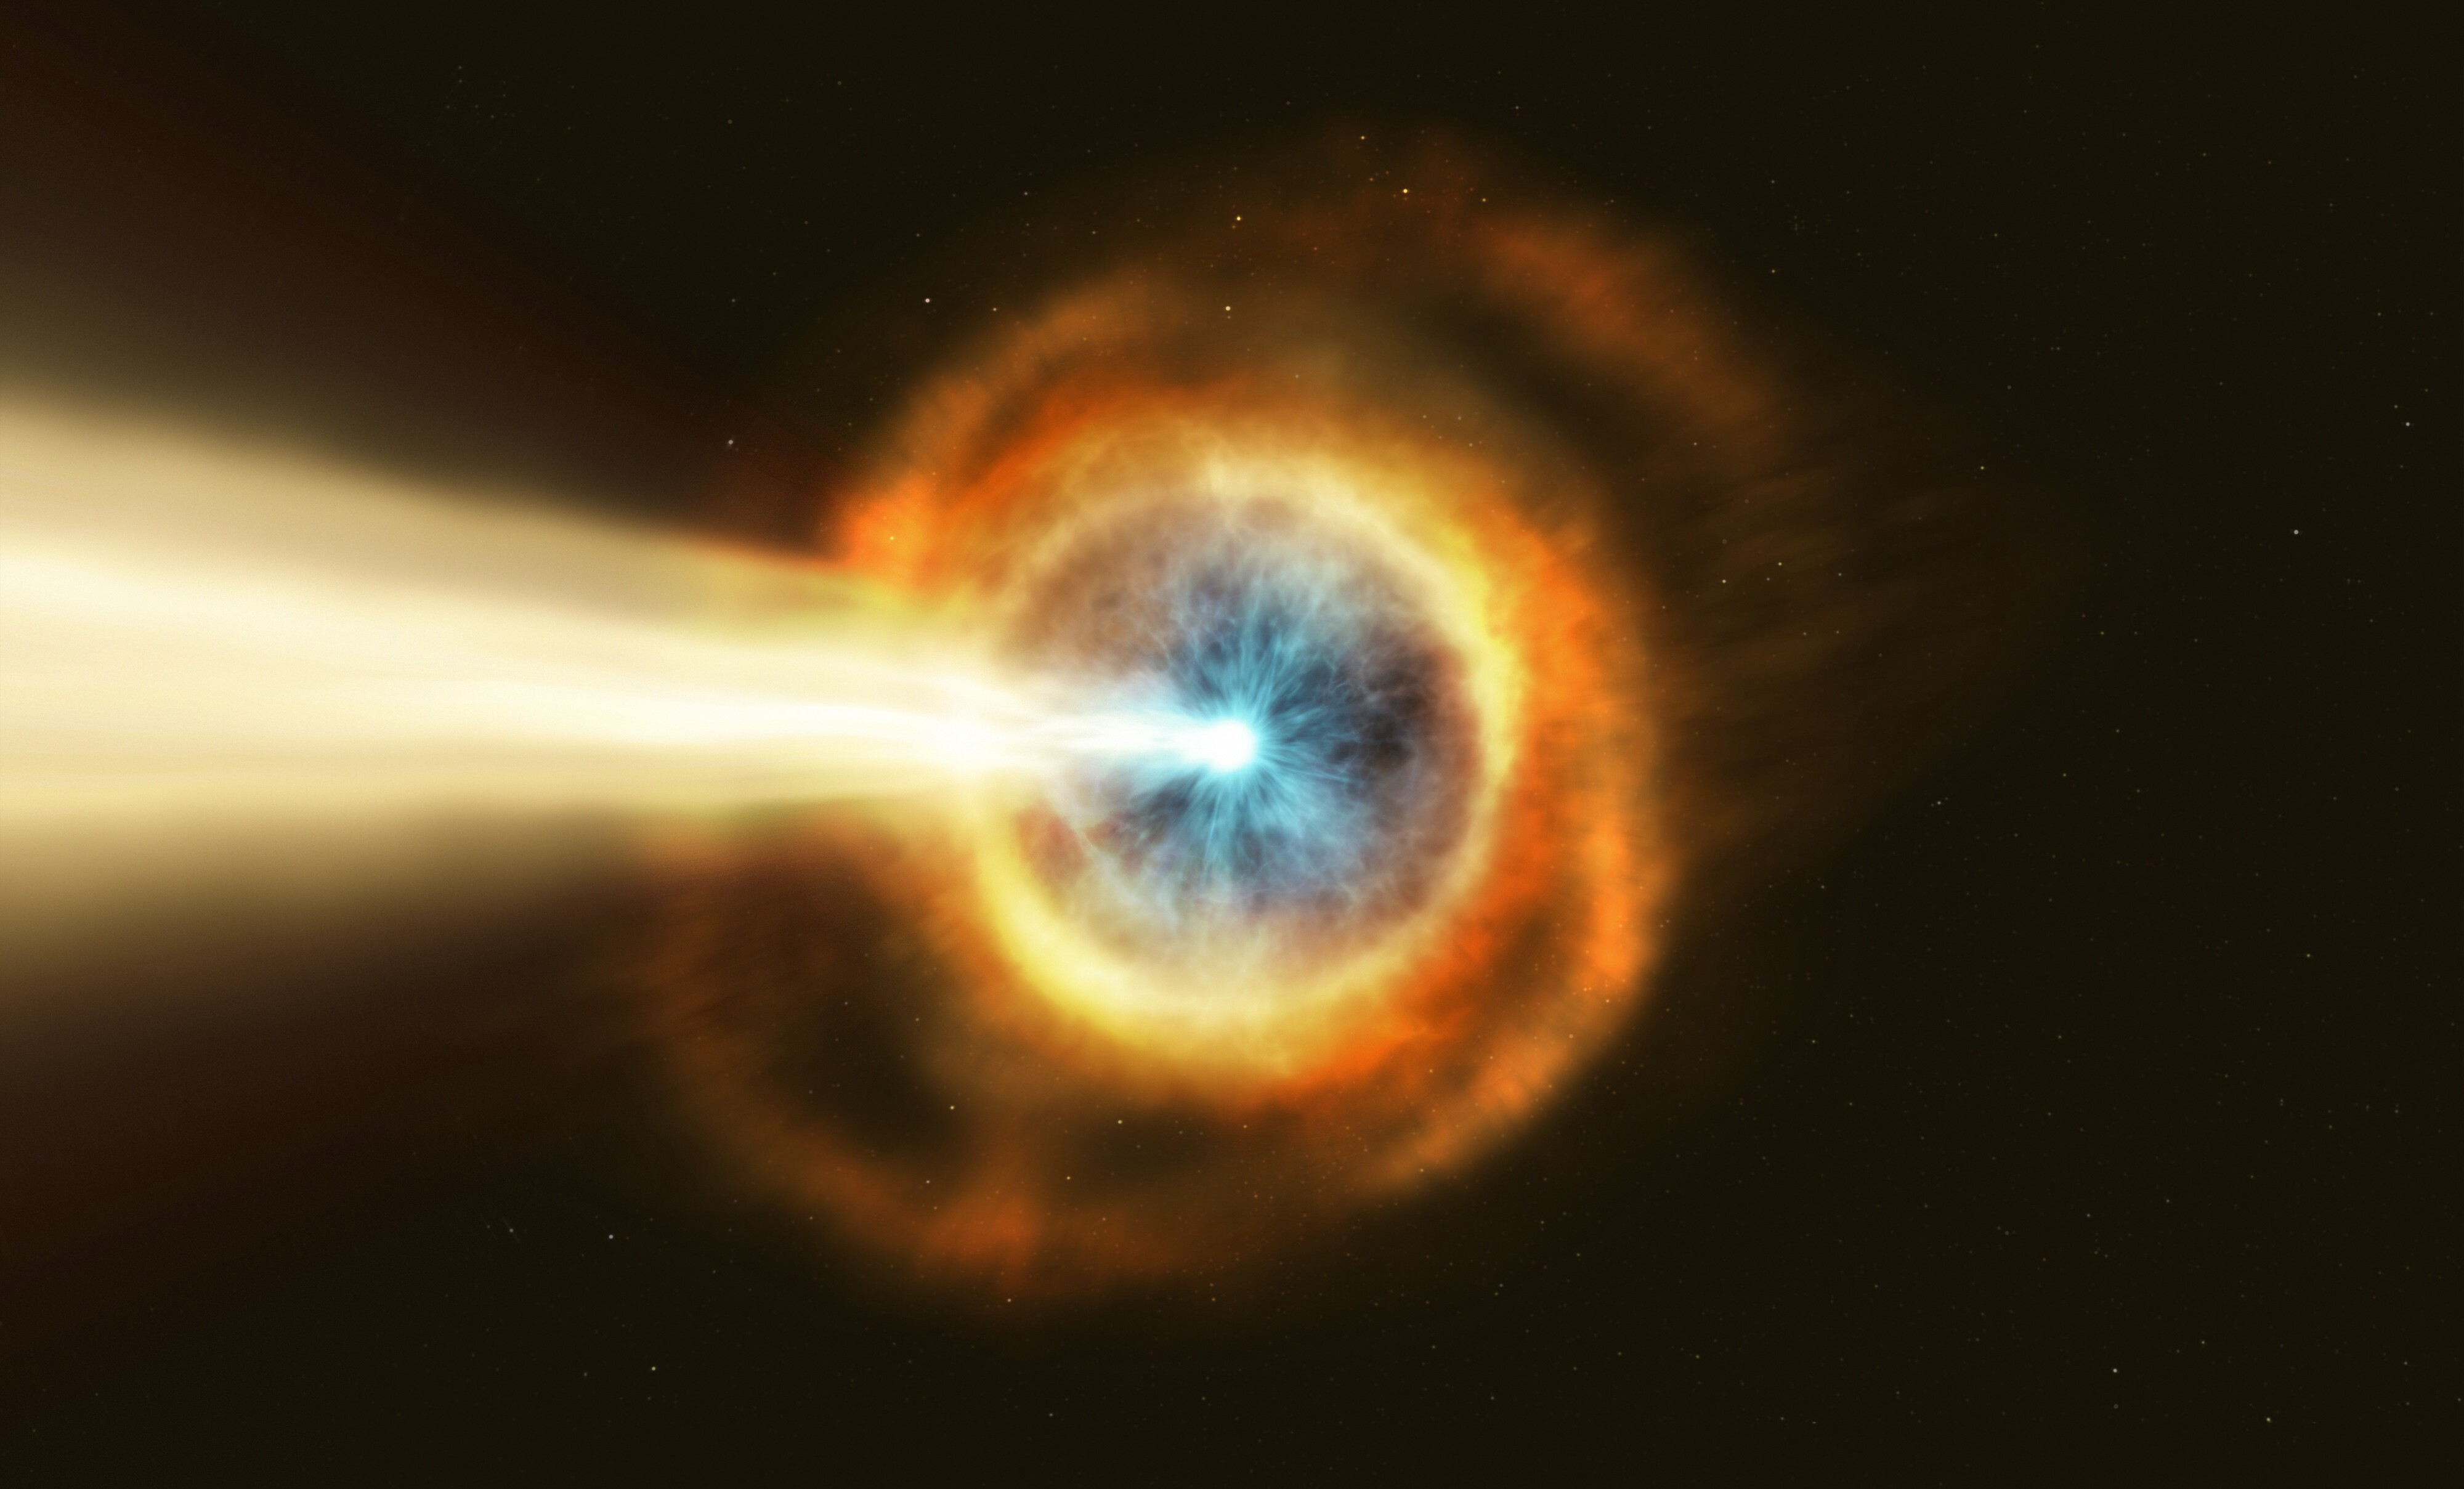 'Hubble' Observes the Most Powerful Gamma Ray Burst Ever Detected